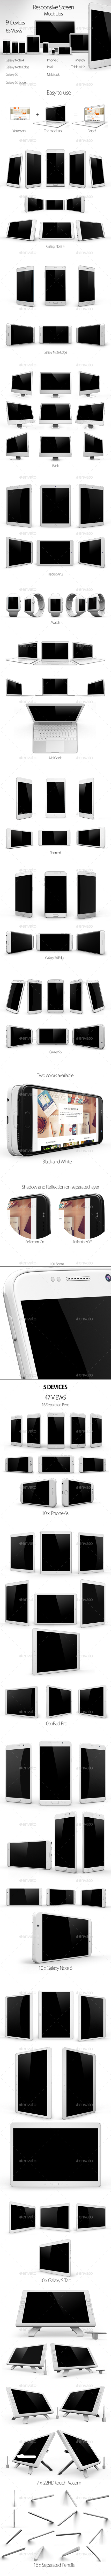 Smart Screen Devices  Mock Up Pack - Multiple Displays